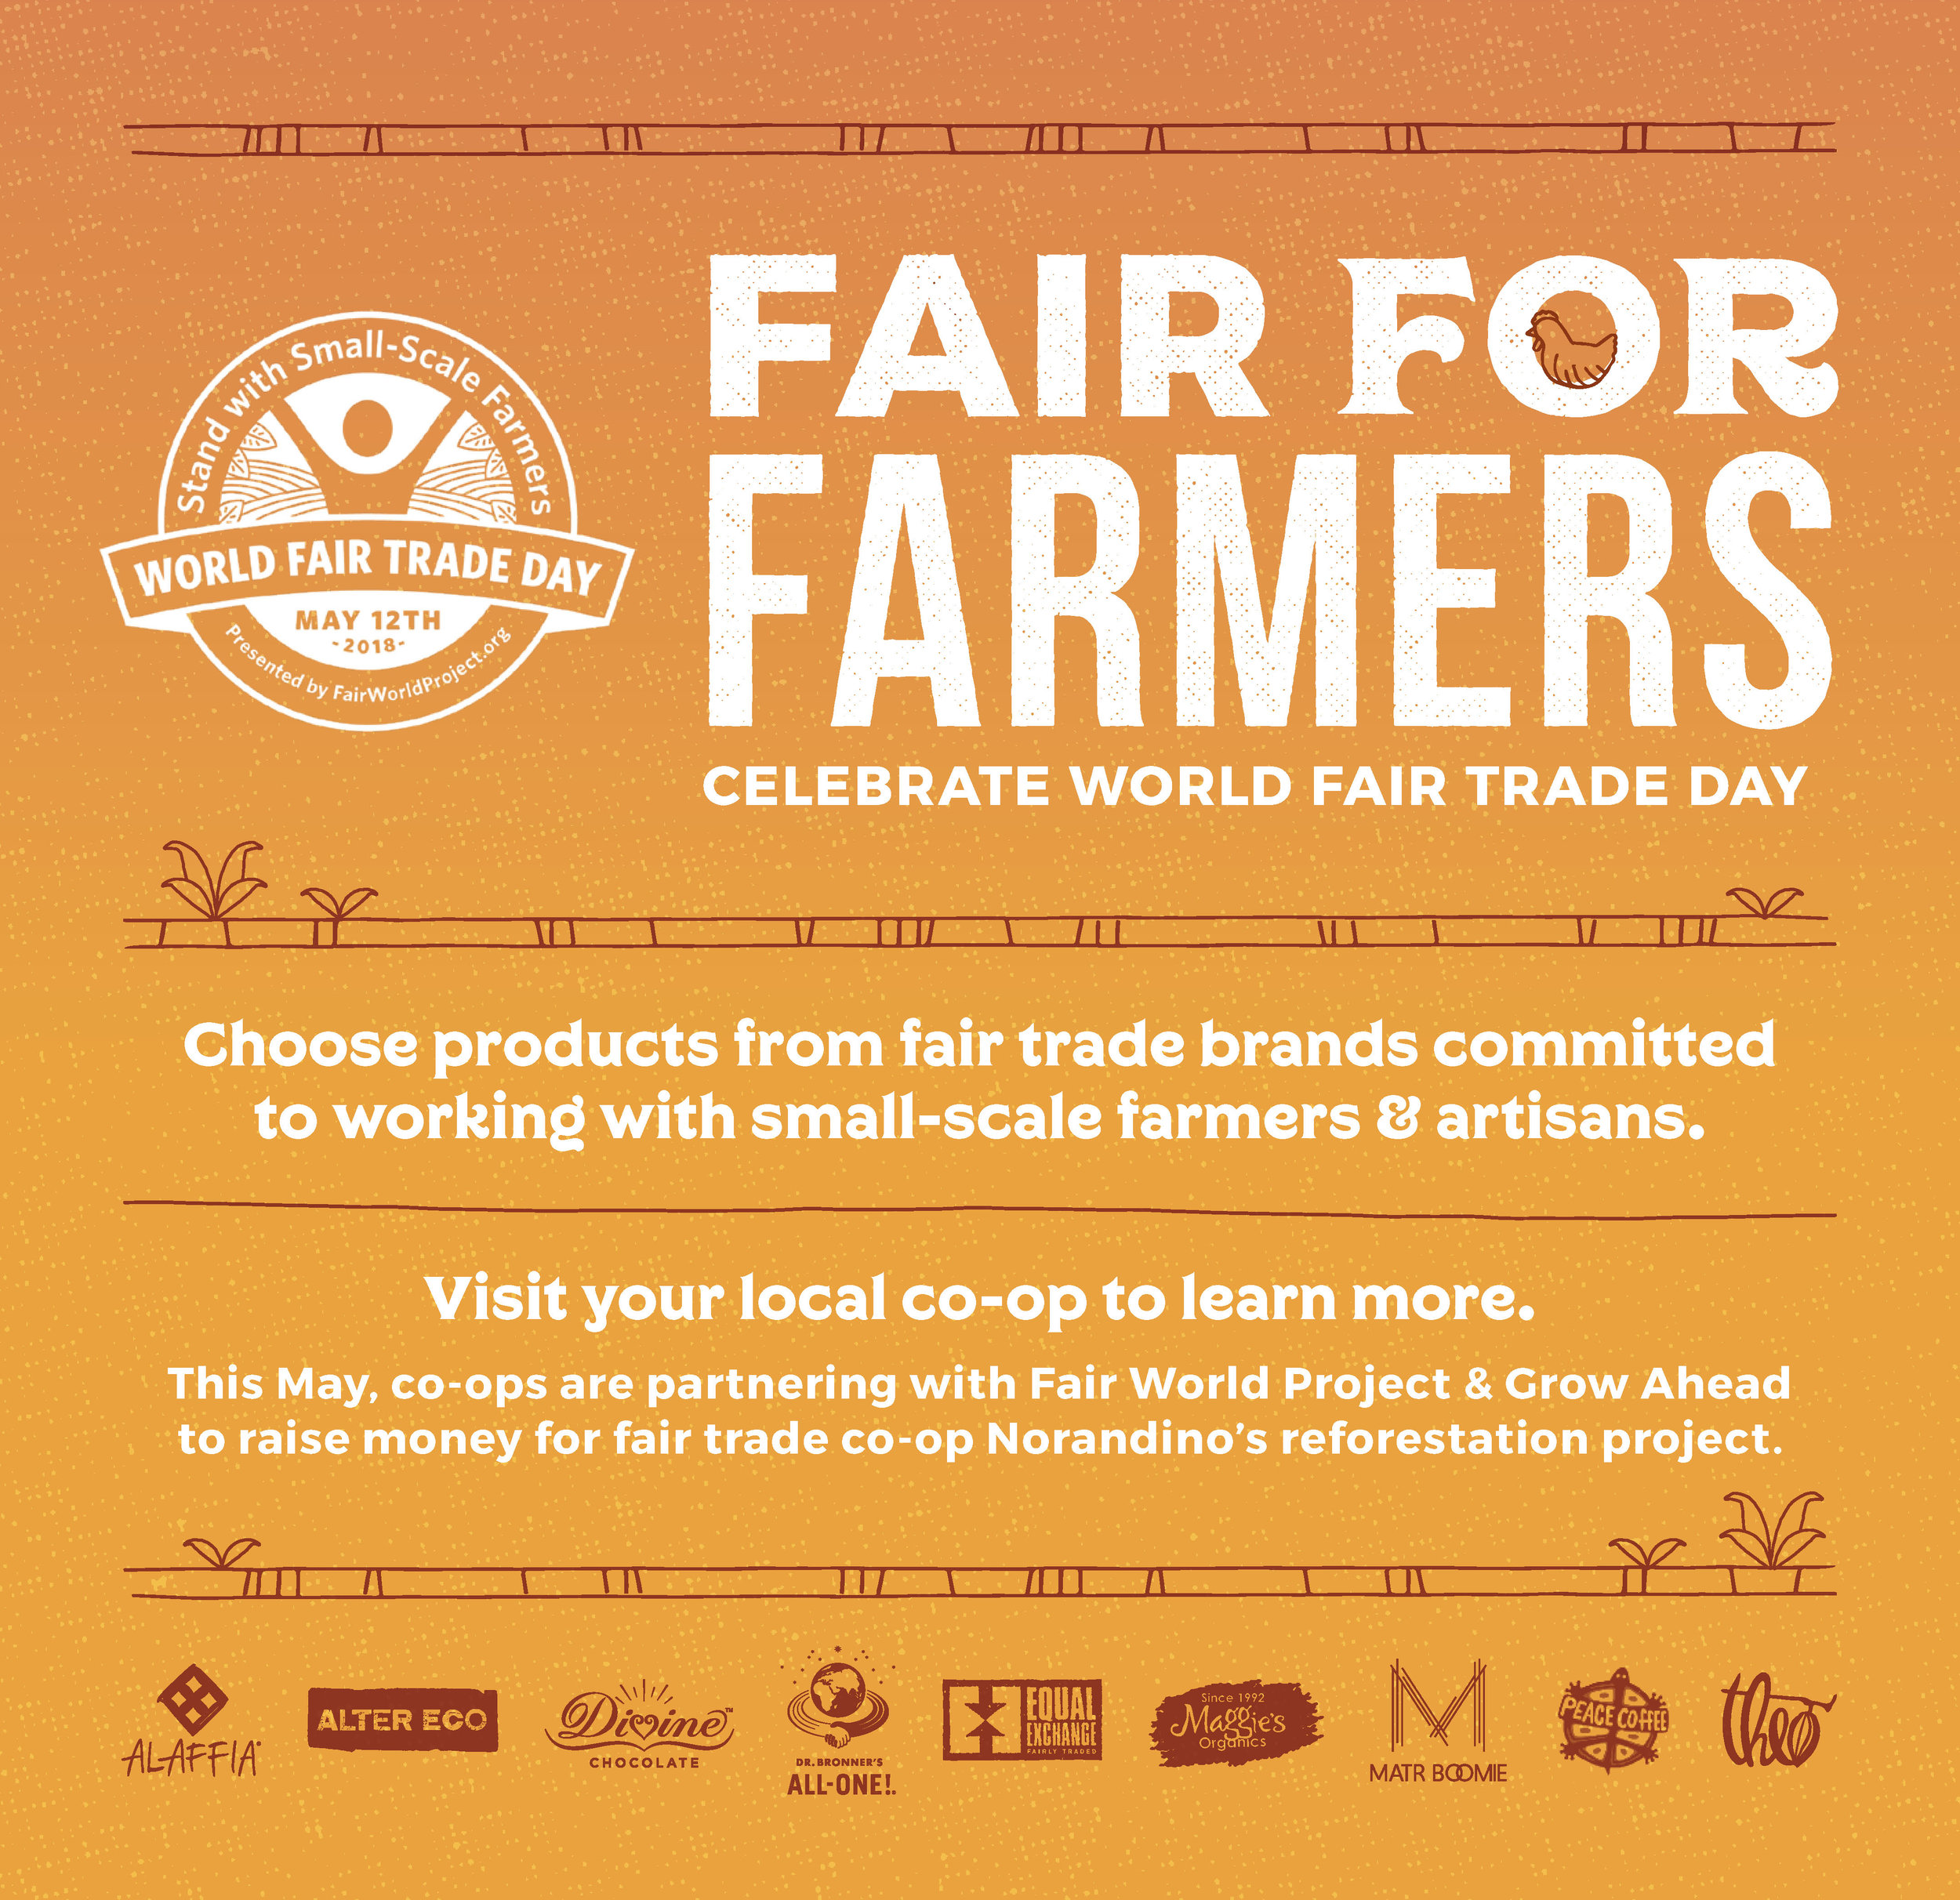 World_Fair_Trade_Day_CausePromo_0518A_FlyerAd.jpg